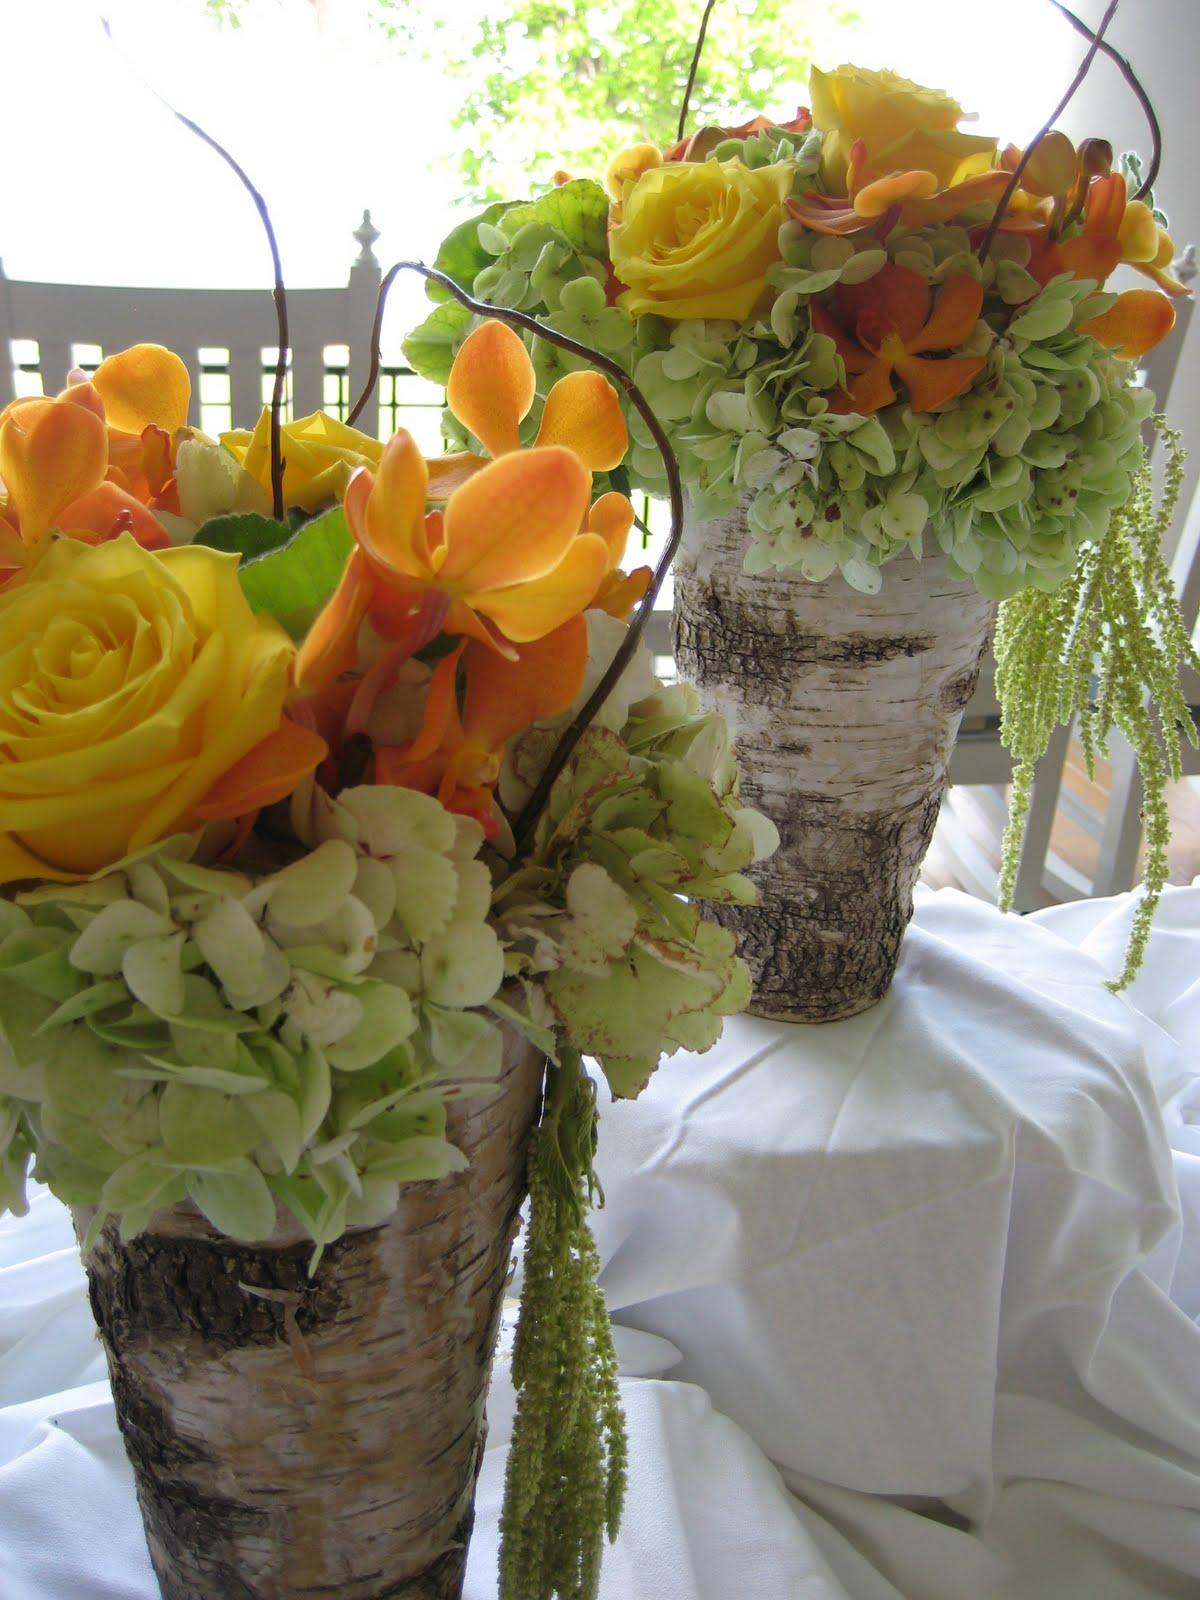 The place card table made